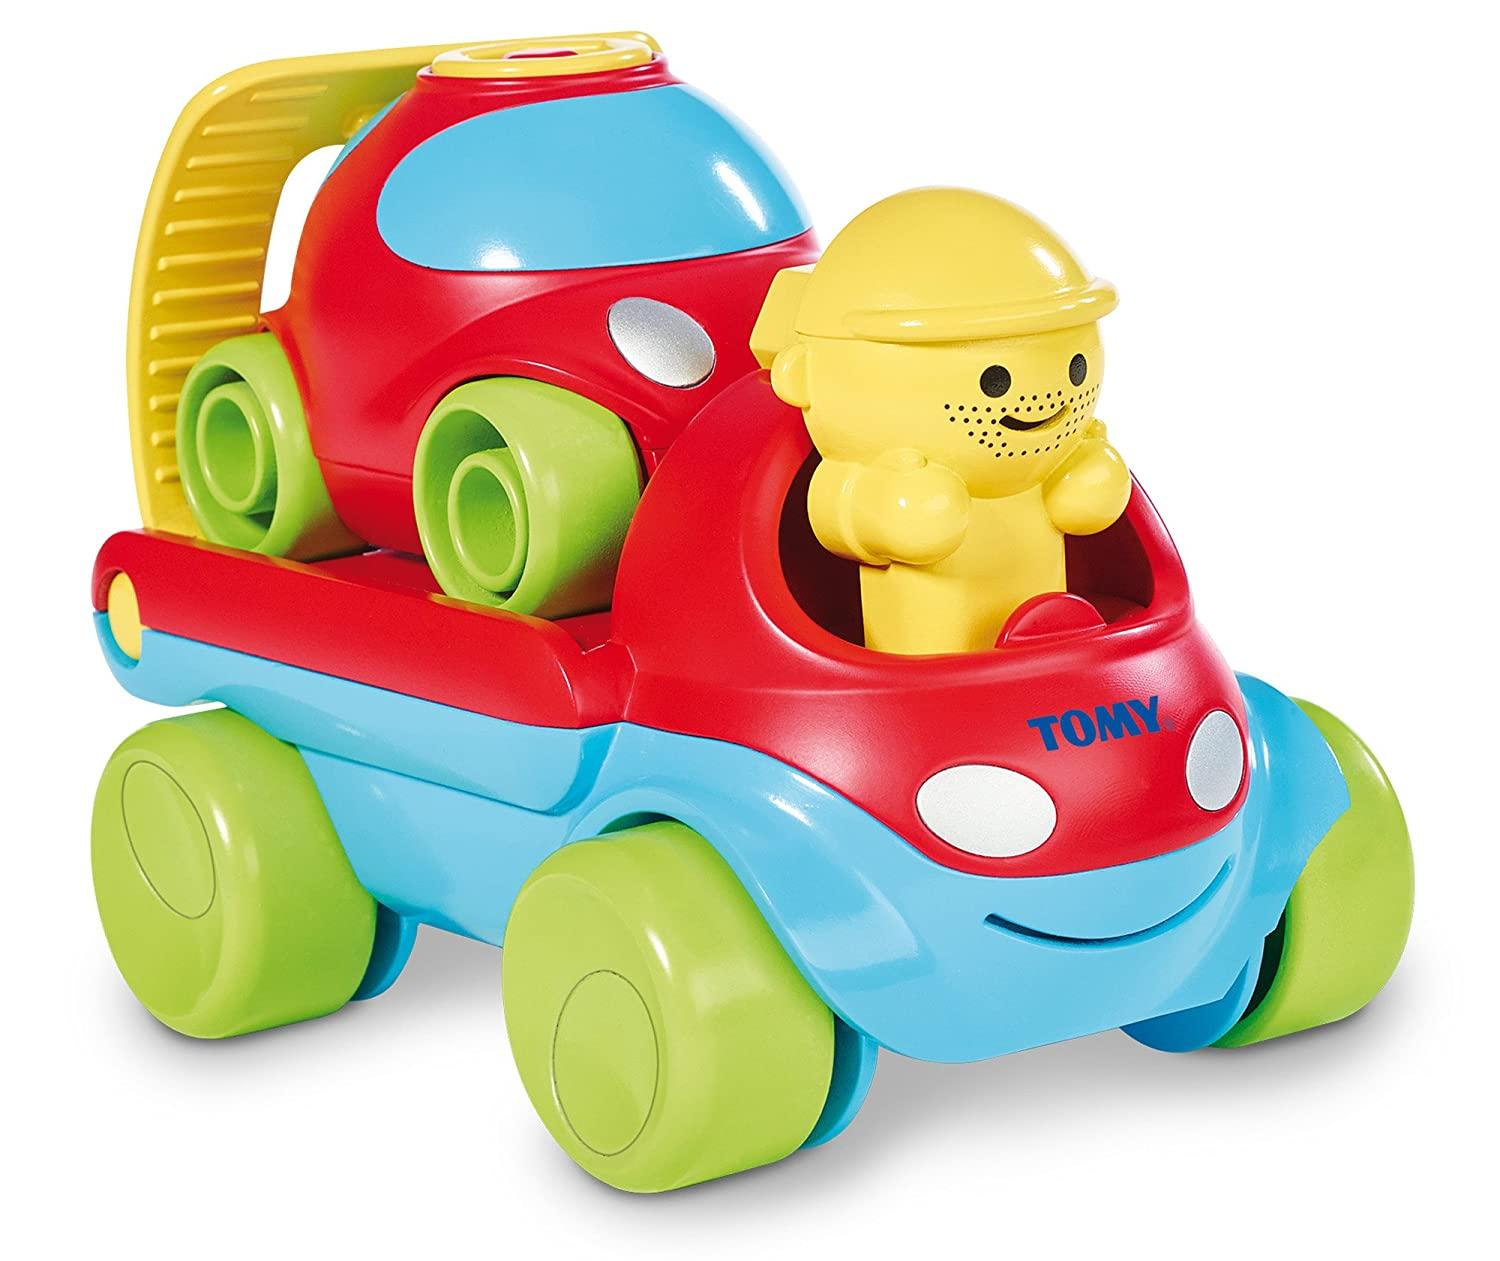 TOMY Toomies Fix and Load Tow Truck - Rescue Play Wind Up Toy Vehicles - Suitable From 1 year E72422